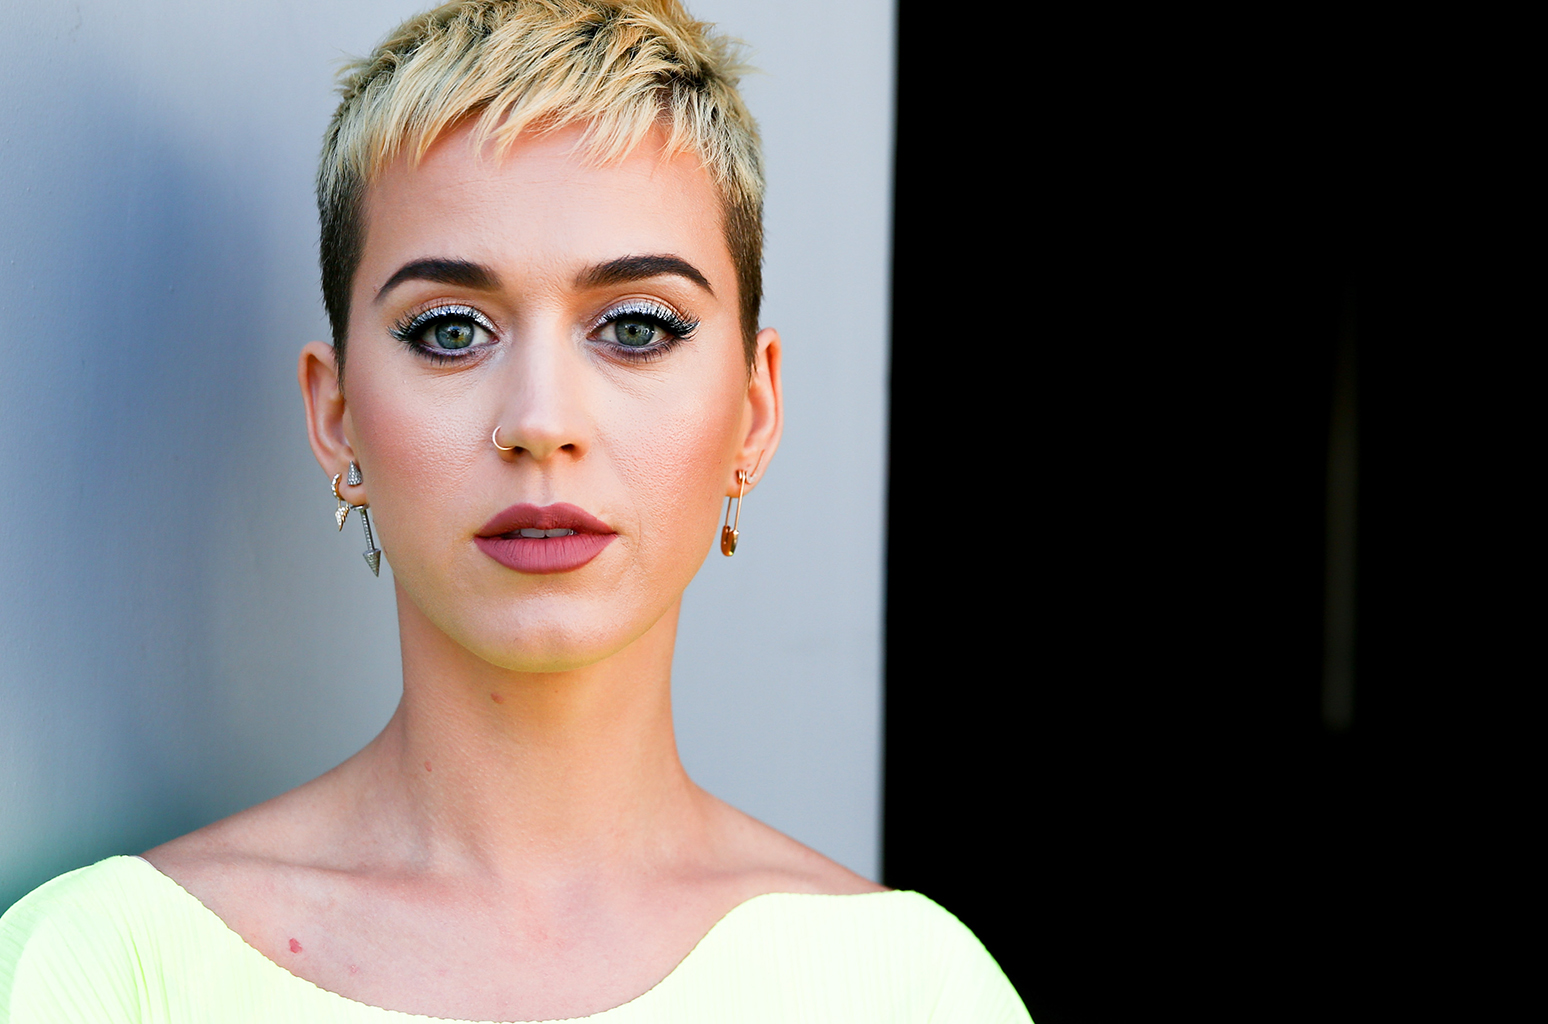 Katy Perry Wiki Bio, Net Worth, Husband, Boyfriend, Parents, Real Name